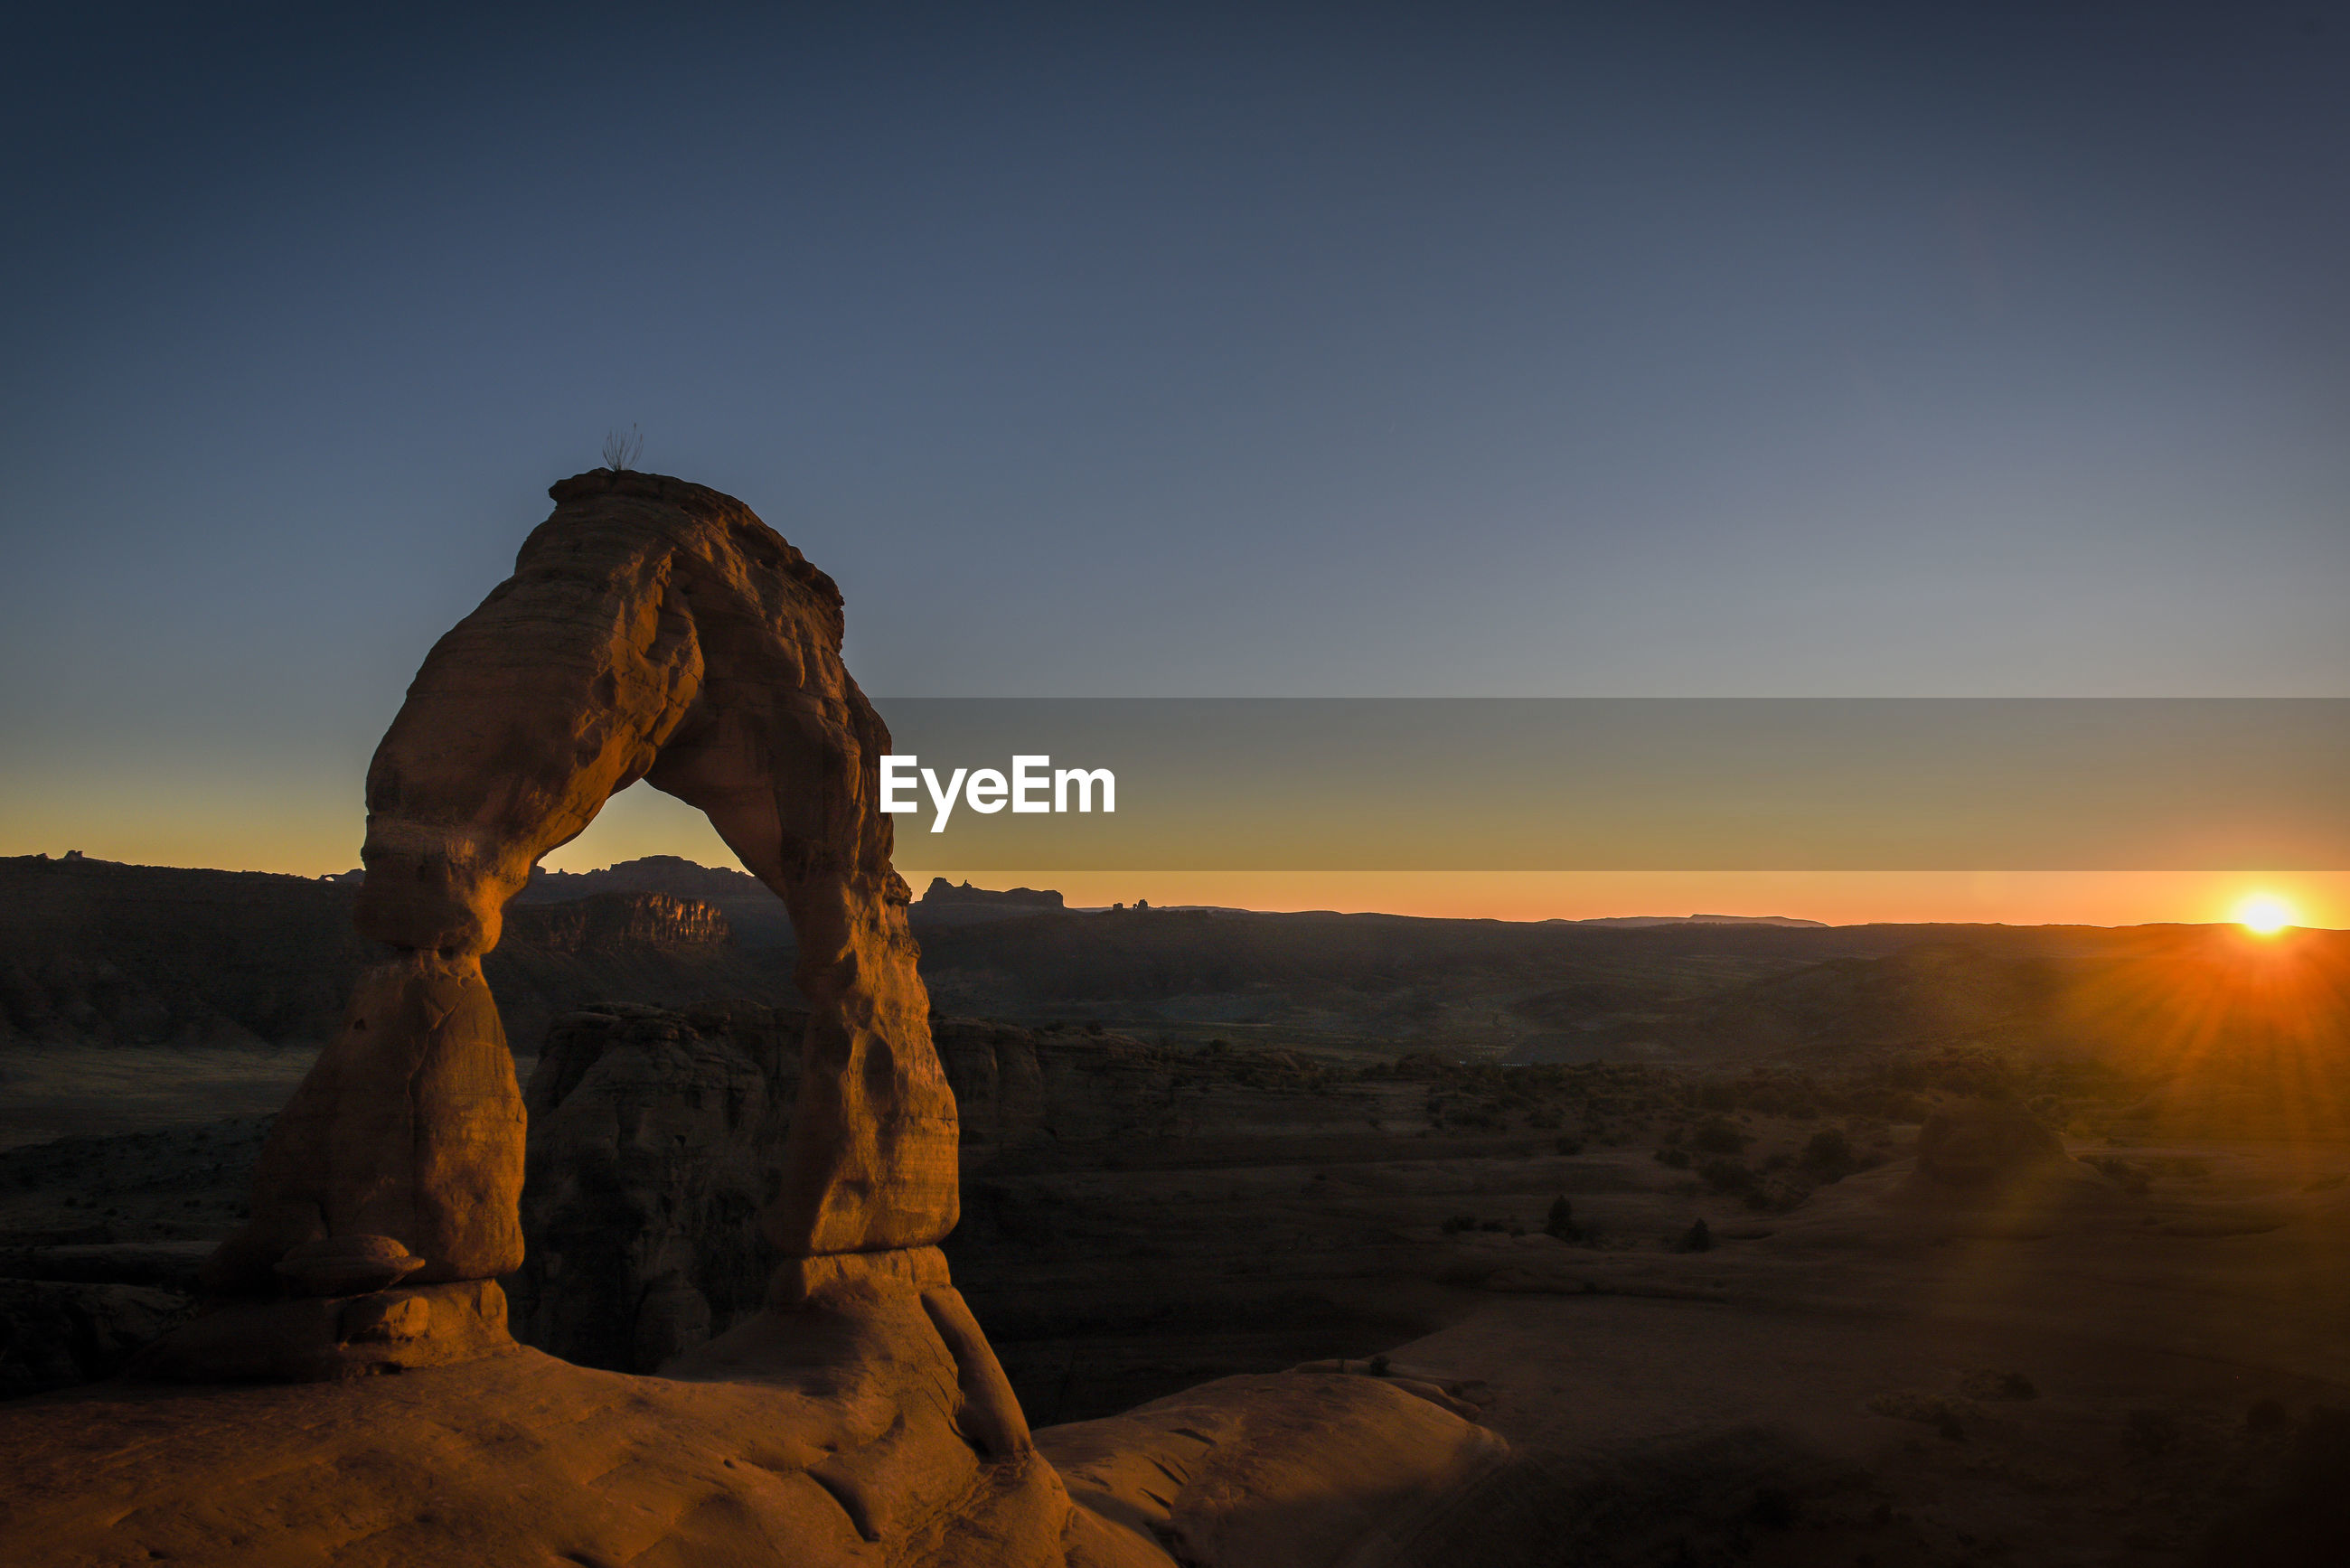 Sunset on delicate arch.